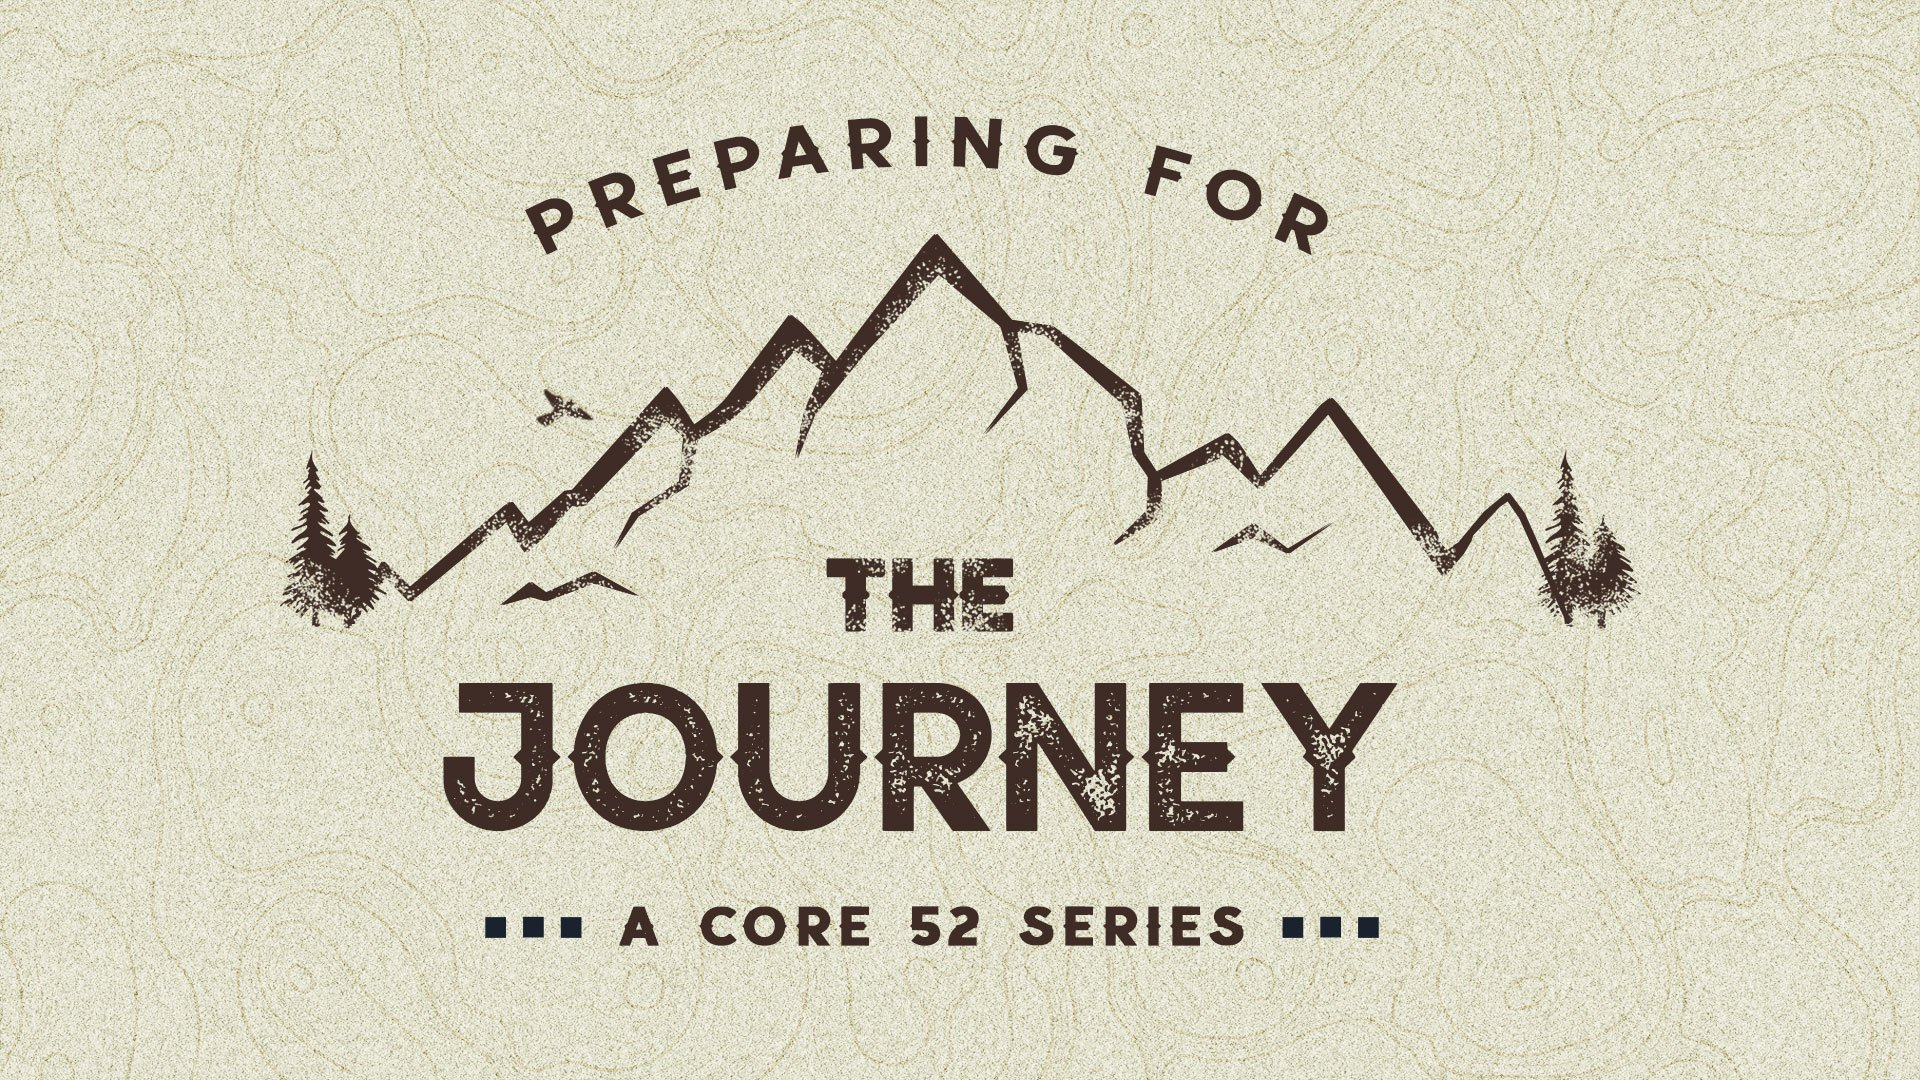 preparing for the journey logo